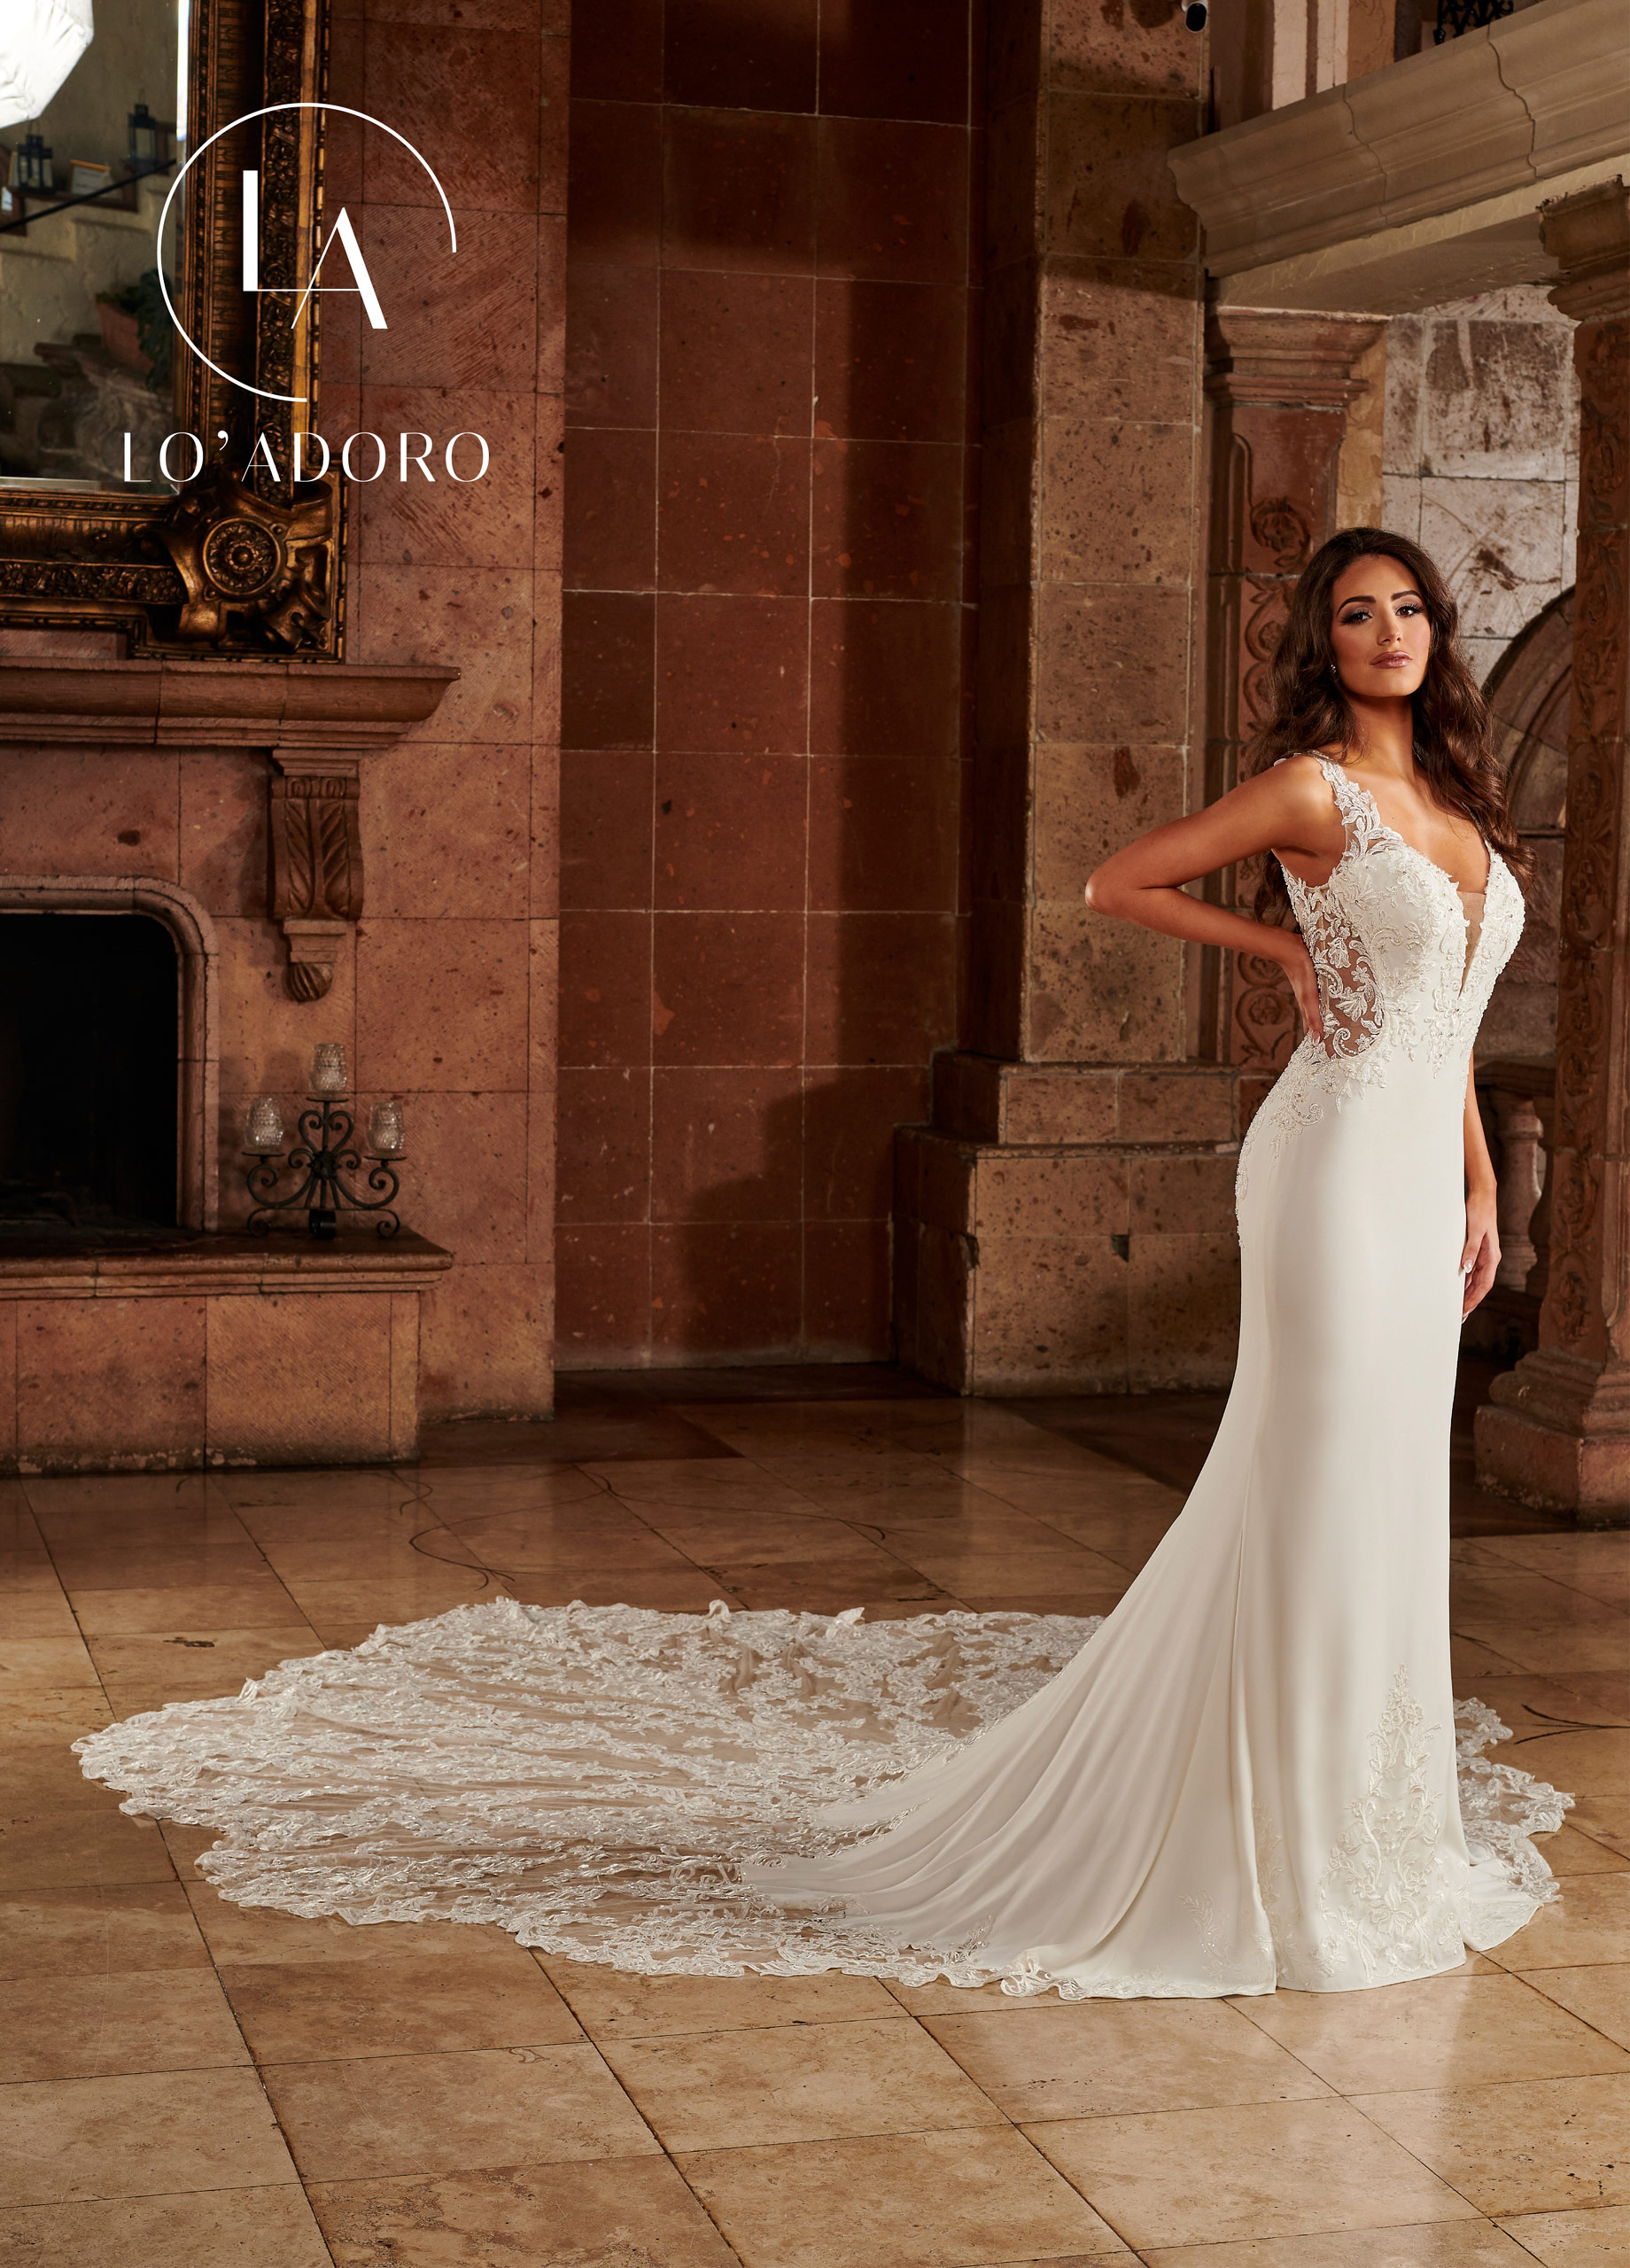 Strappy Fit & Flare Lo' Adoro Bridal in Ivory Color